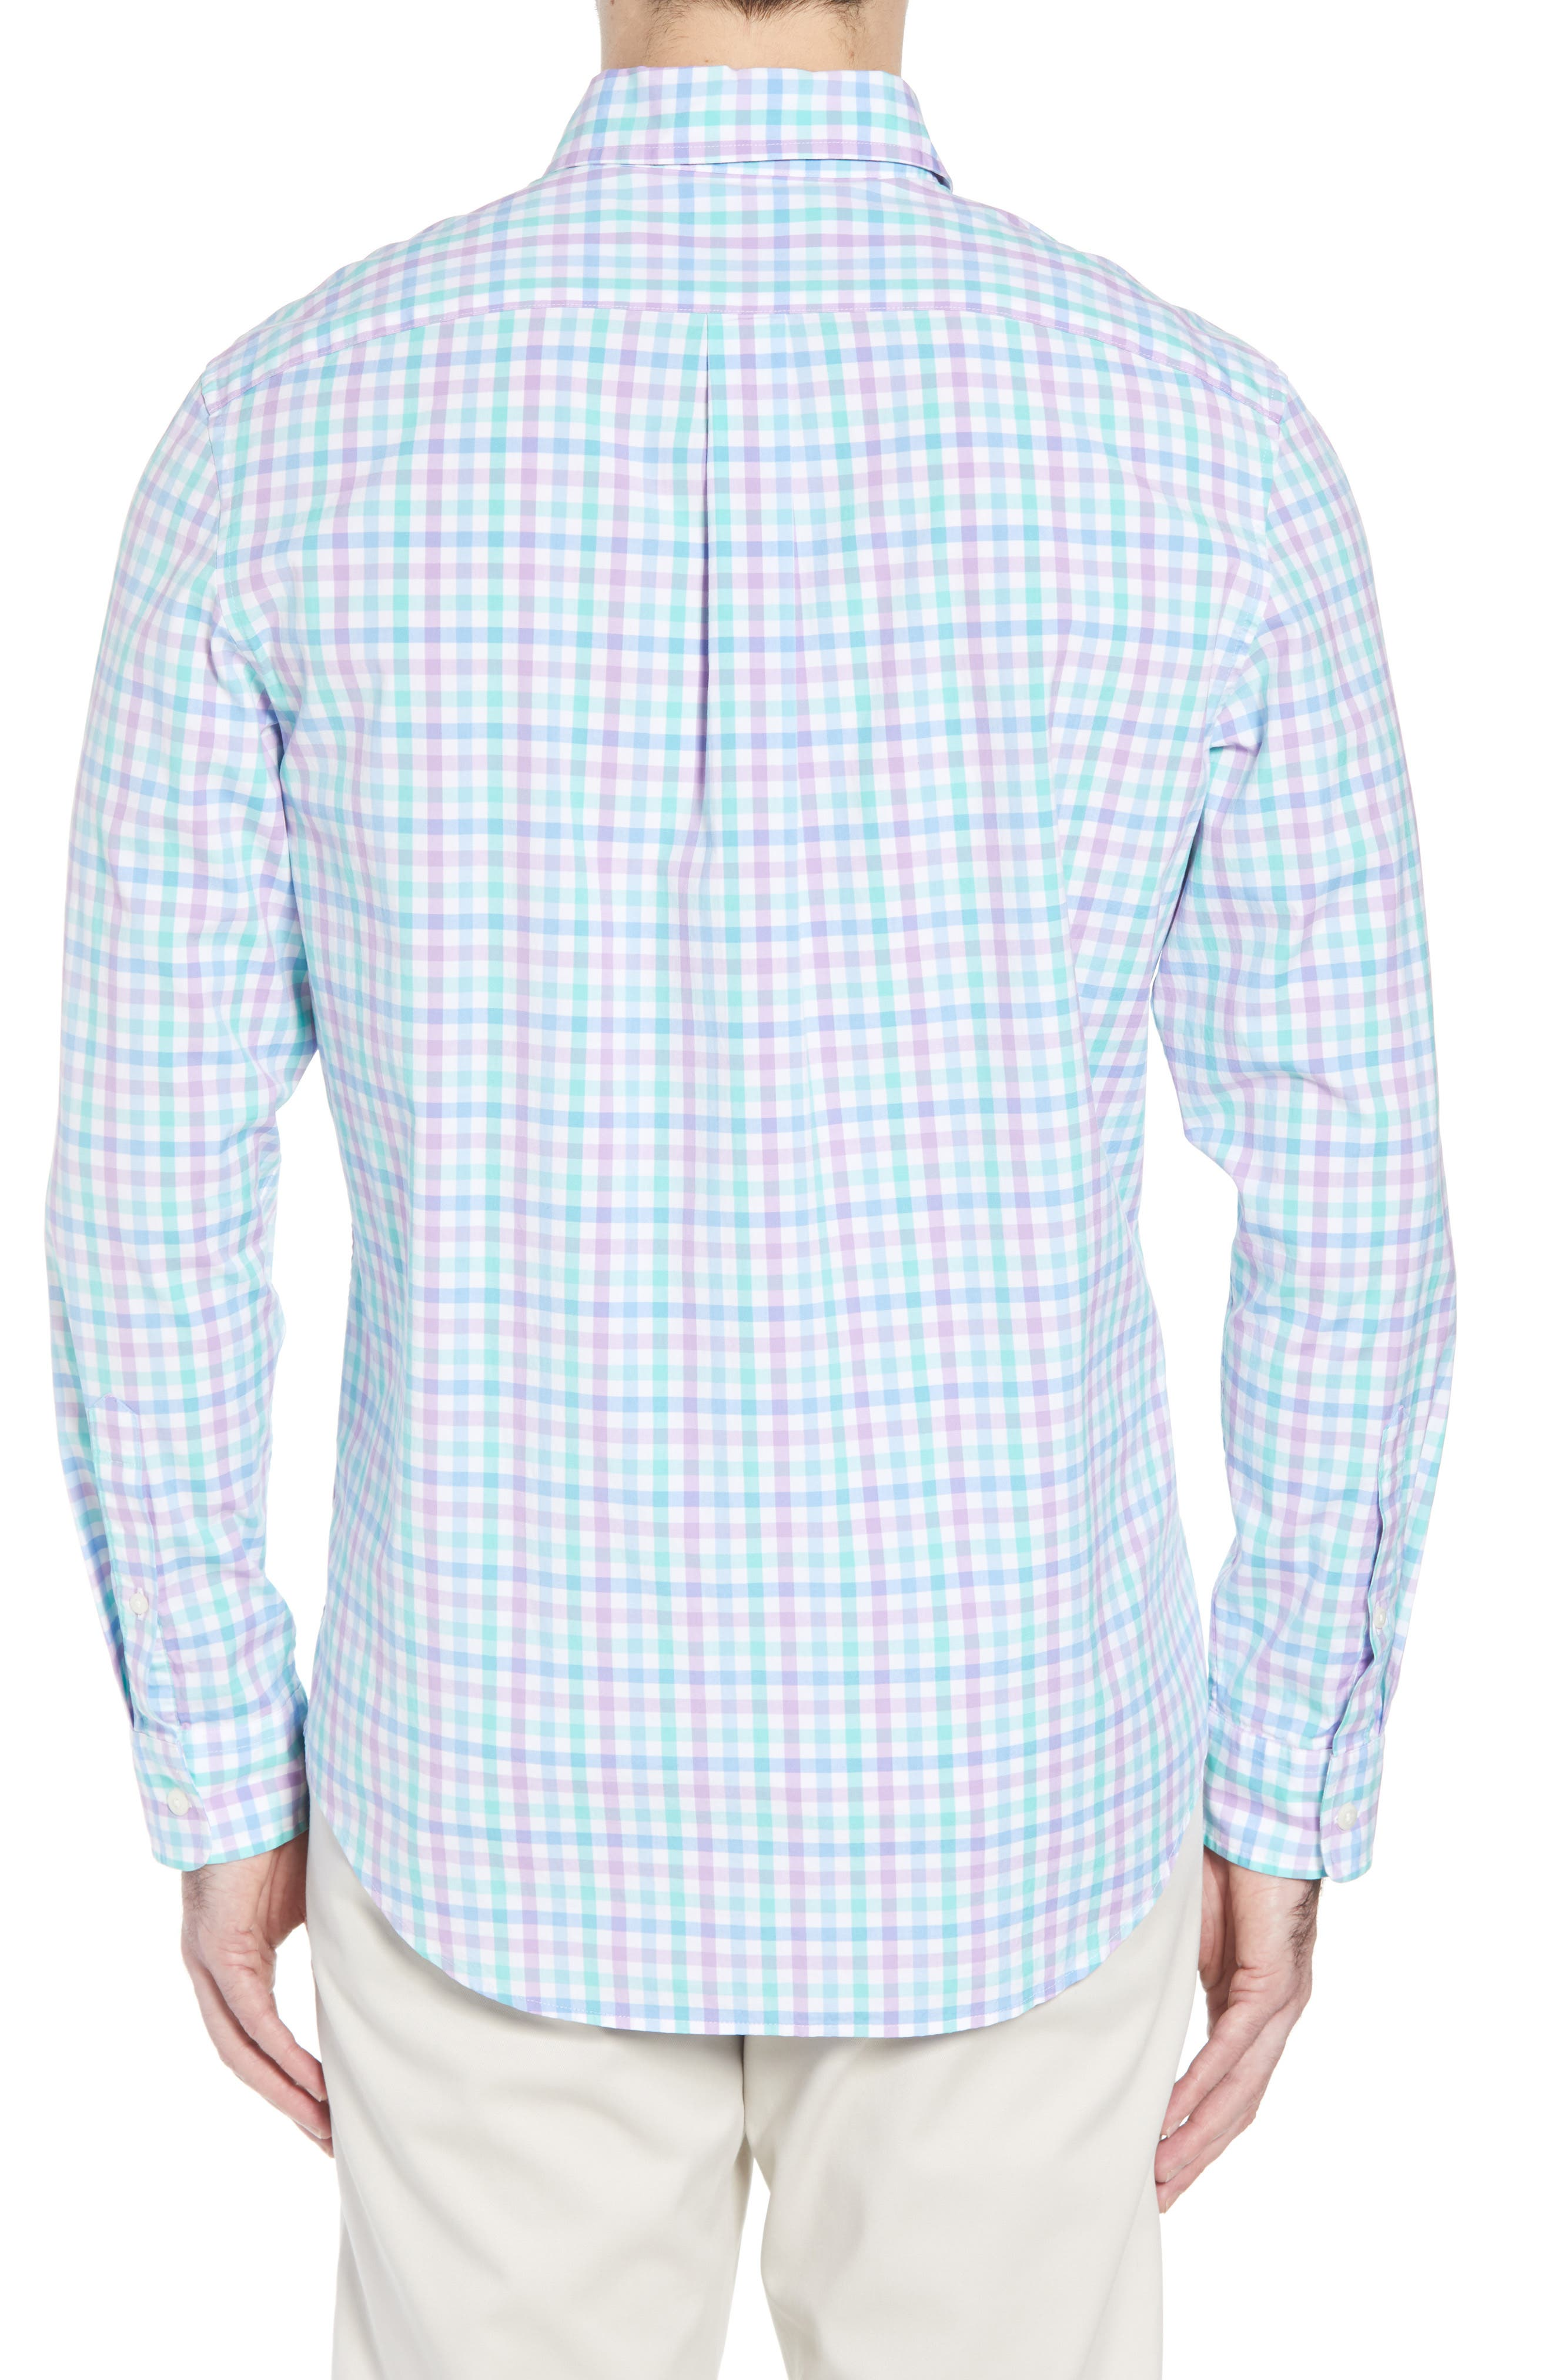 VINEYARD VINES,                             Murray Classic Fit Stretch Check Sport Shirt,                             Alternate thumbnail 2, color,                             526